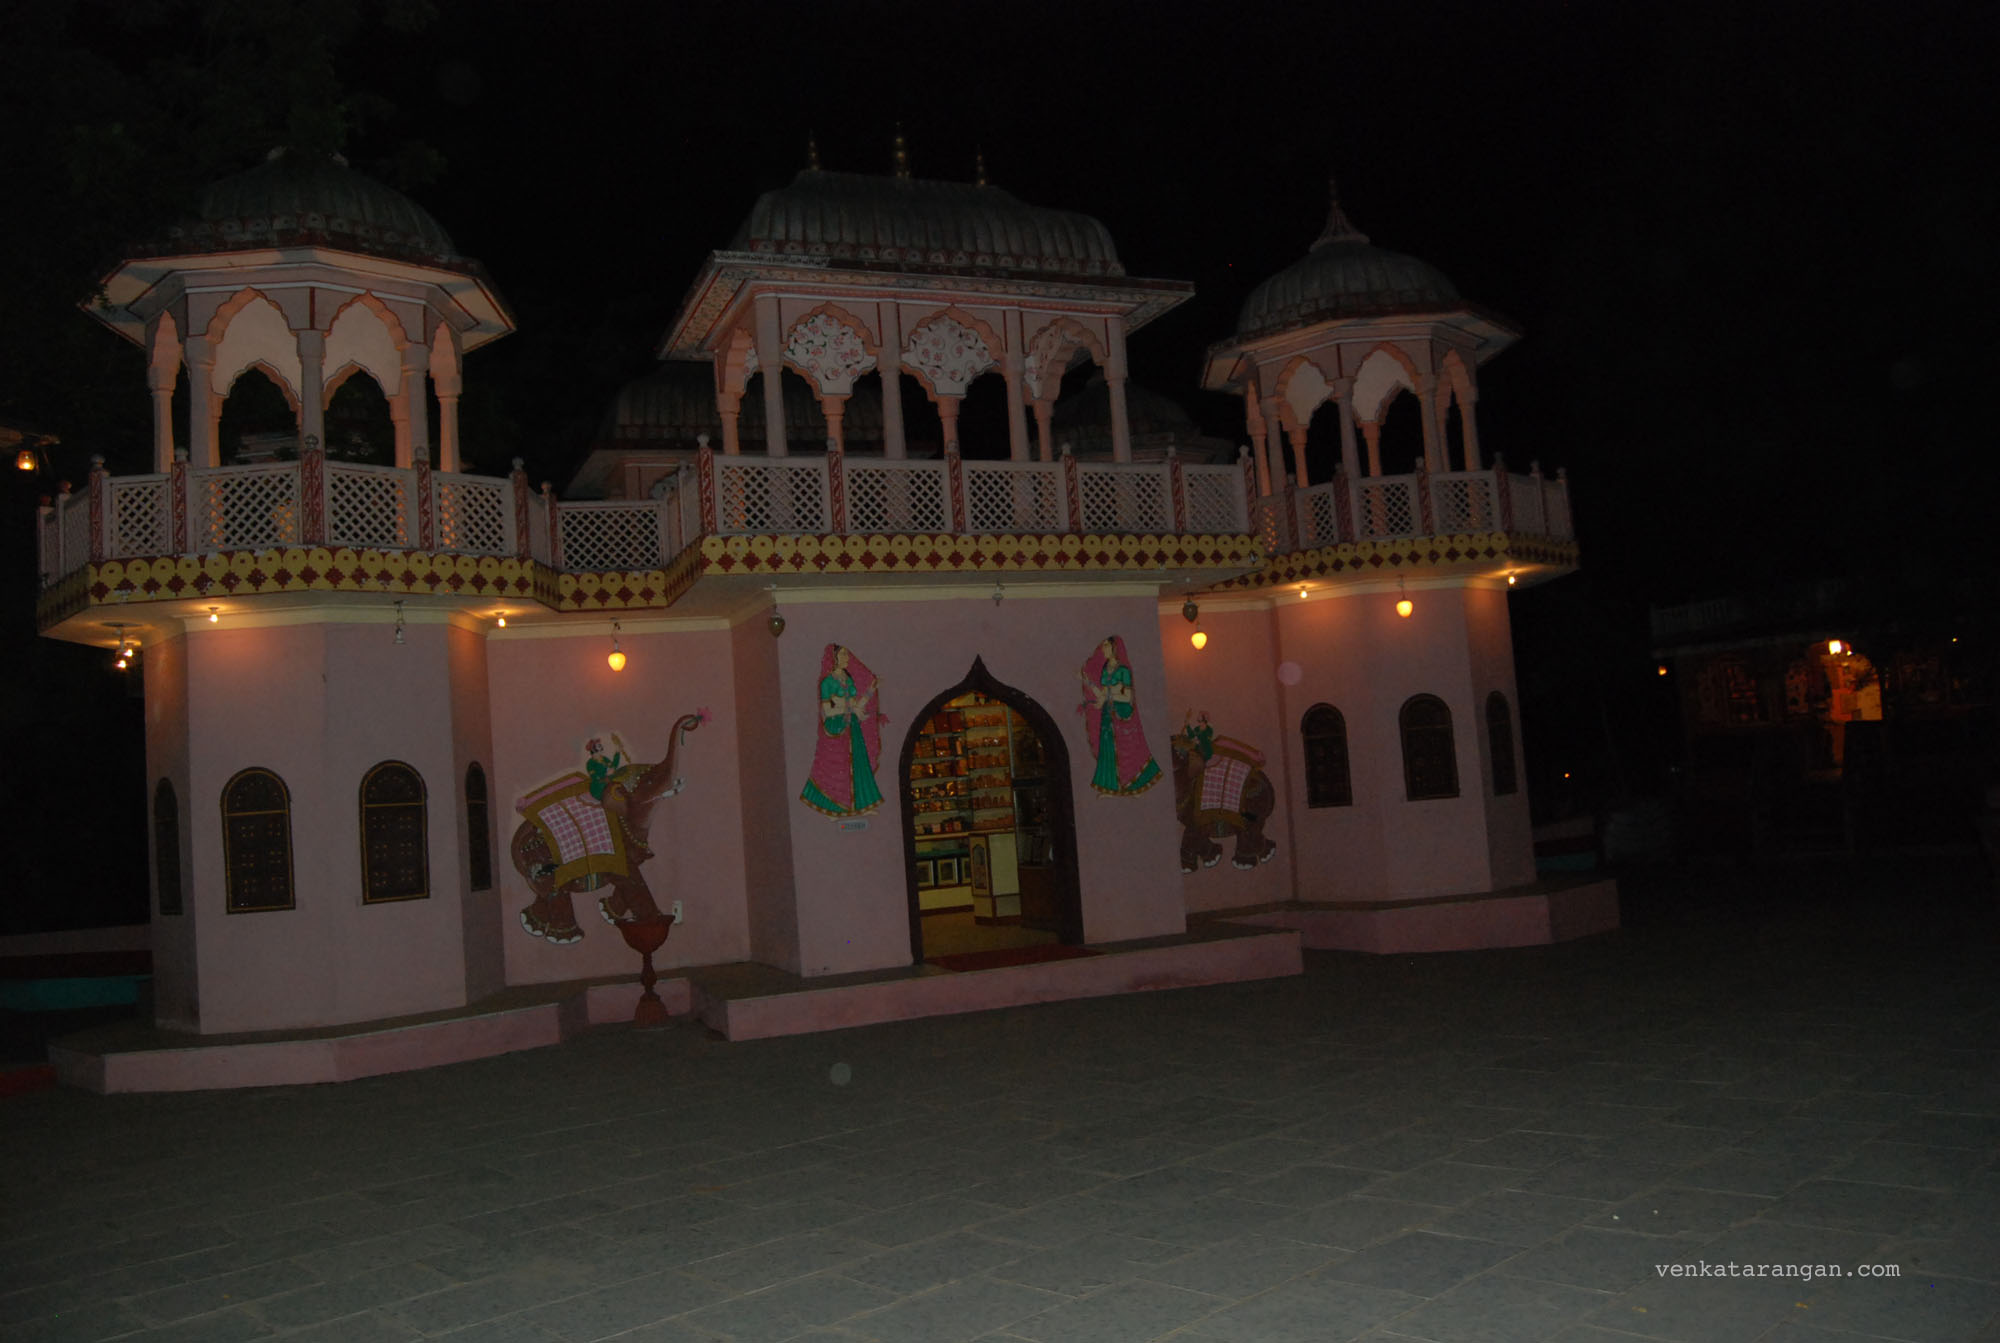 A model palace in Chokhi Dhani